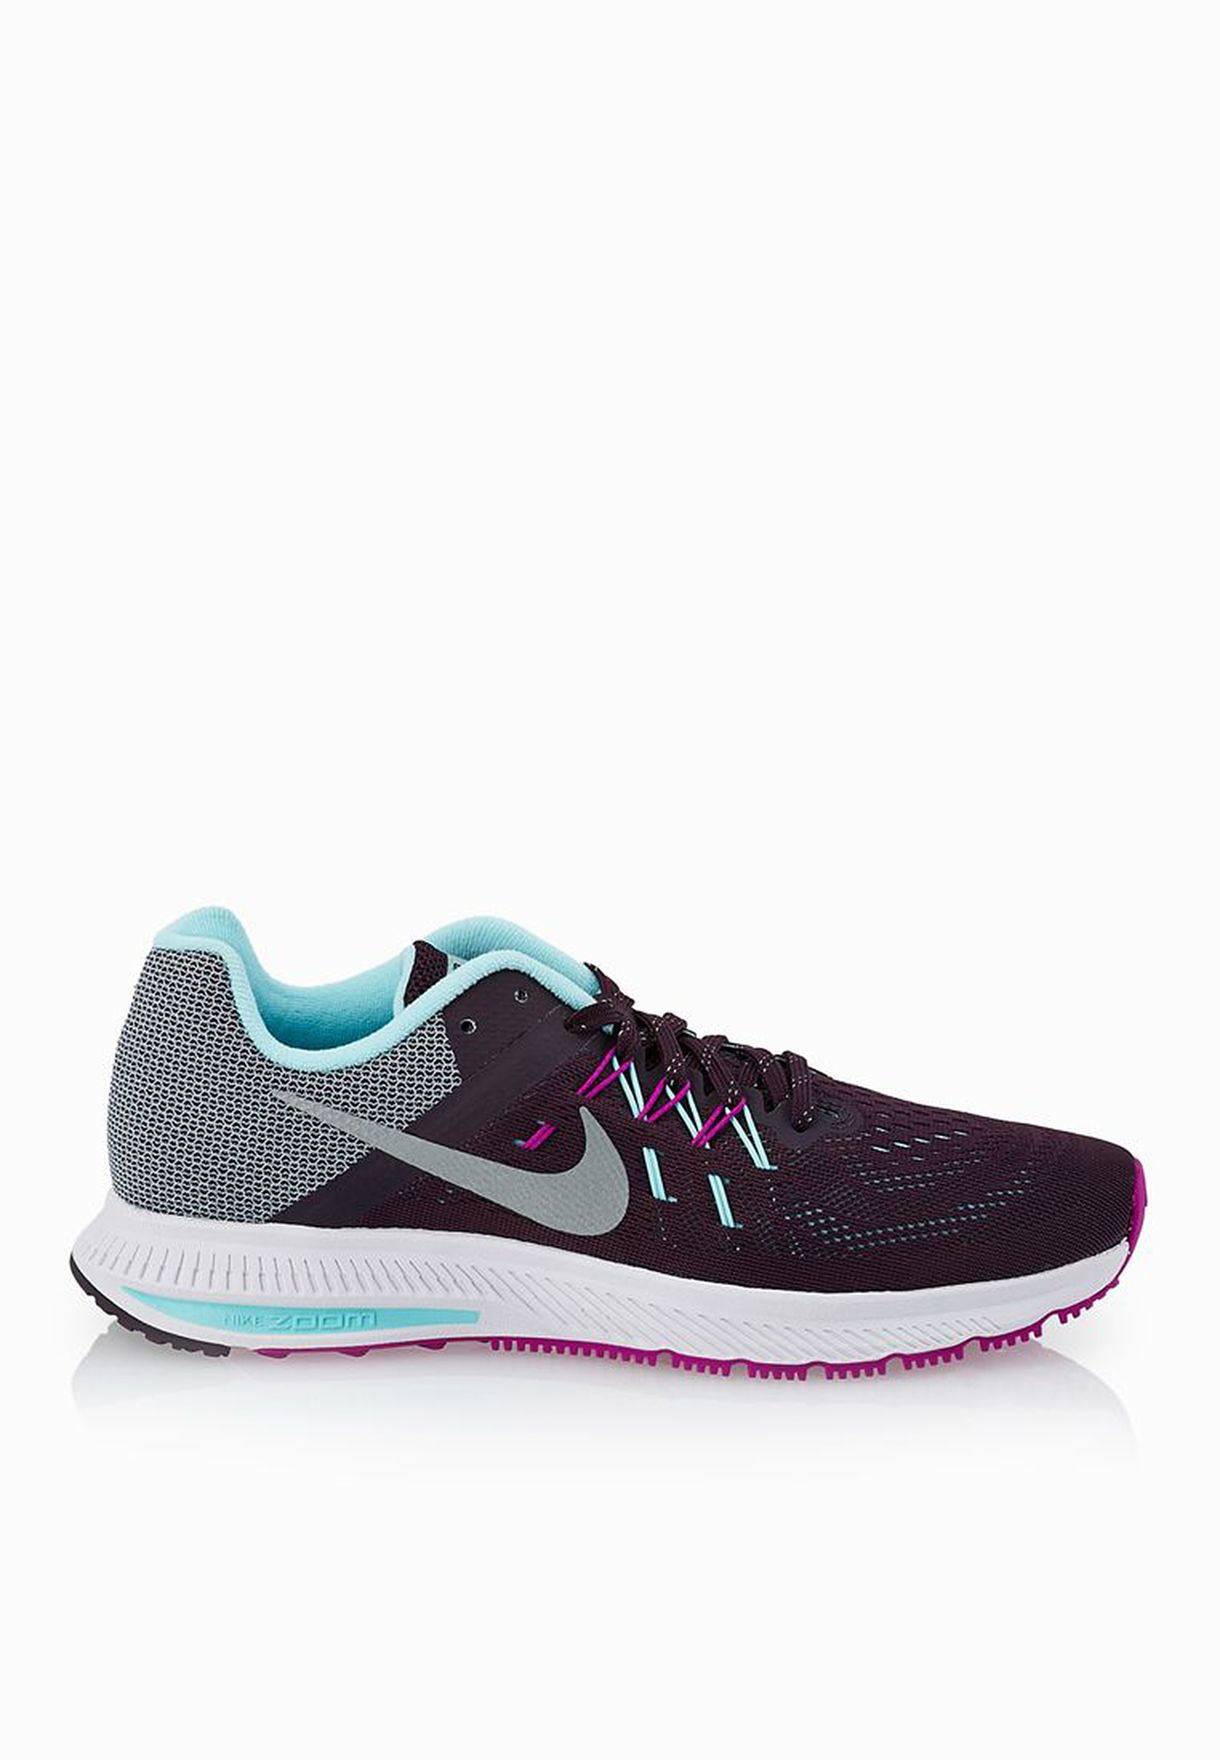 6d203580d9d2b Shop Nike purple Zoom Winflo 2 Flash 807280-500 for Women in Bahrain -  NI727SH09EKS